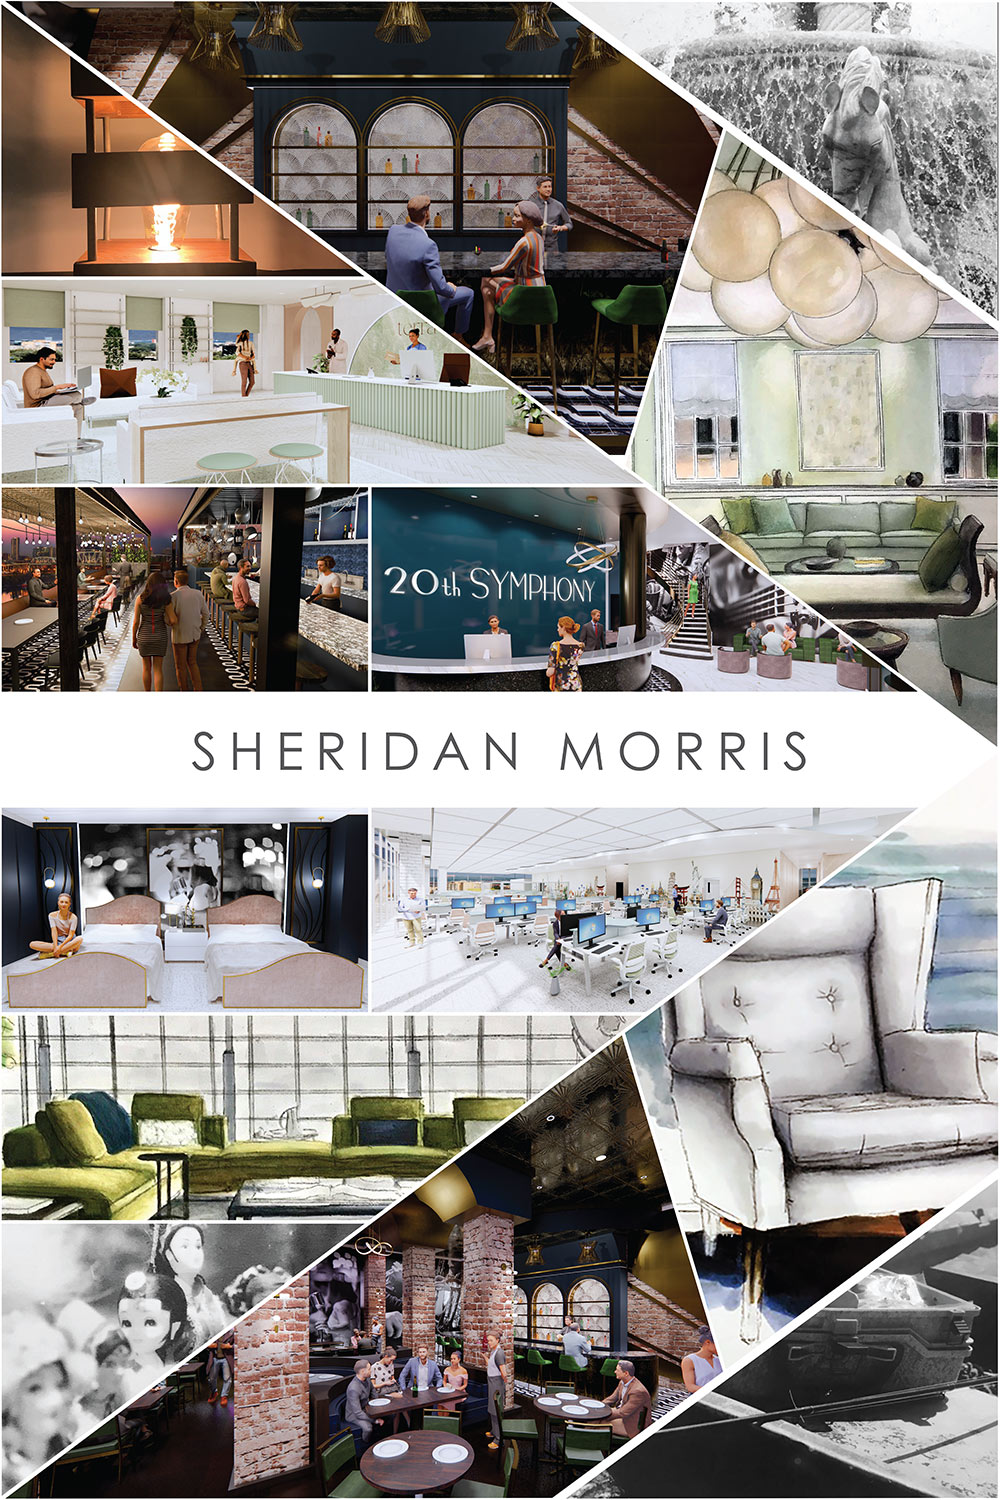 senior interior design board by Sheridan Morris